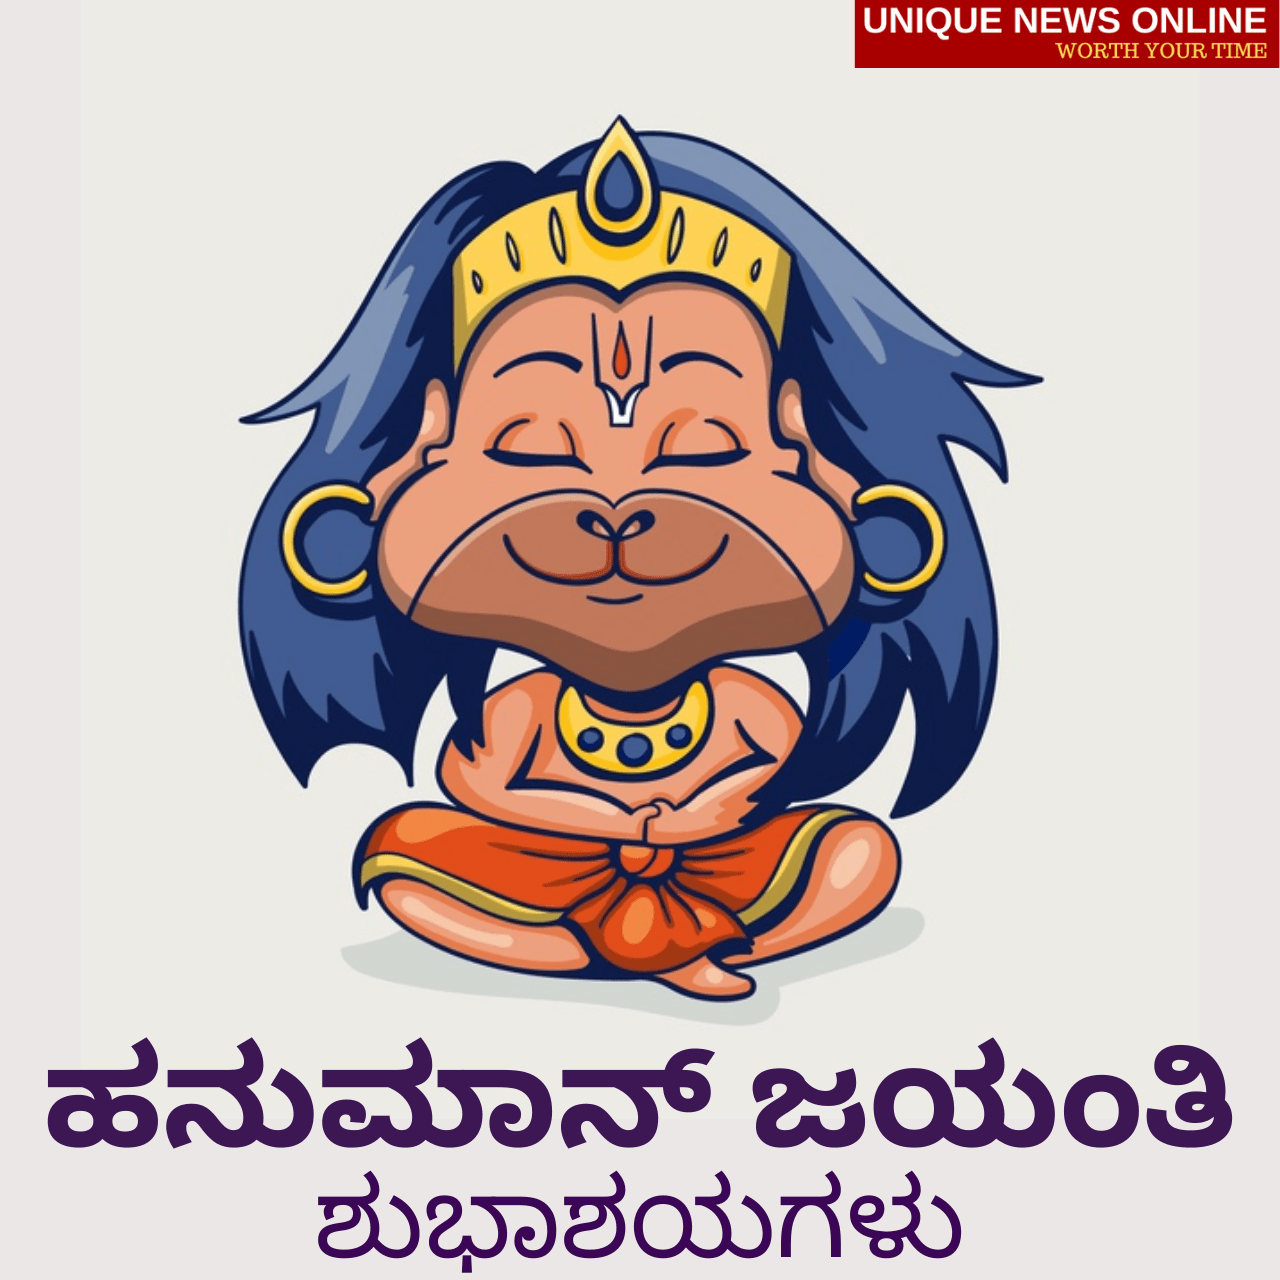 Happy Hanuman Jayanti 2021 Wishes in Kannada, Greetings, Images, Statu, Messages, and Quotes to Share on Hanuman Janmotsav